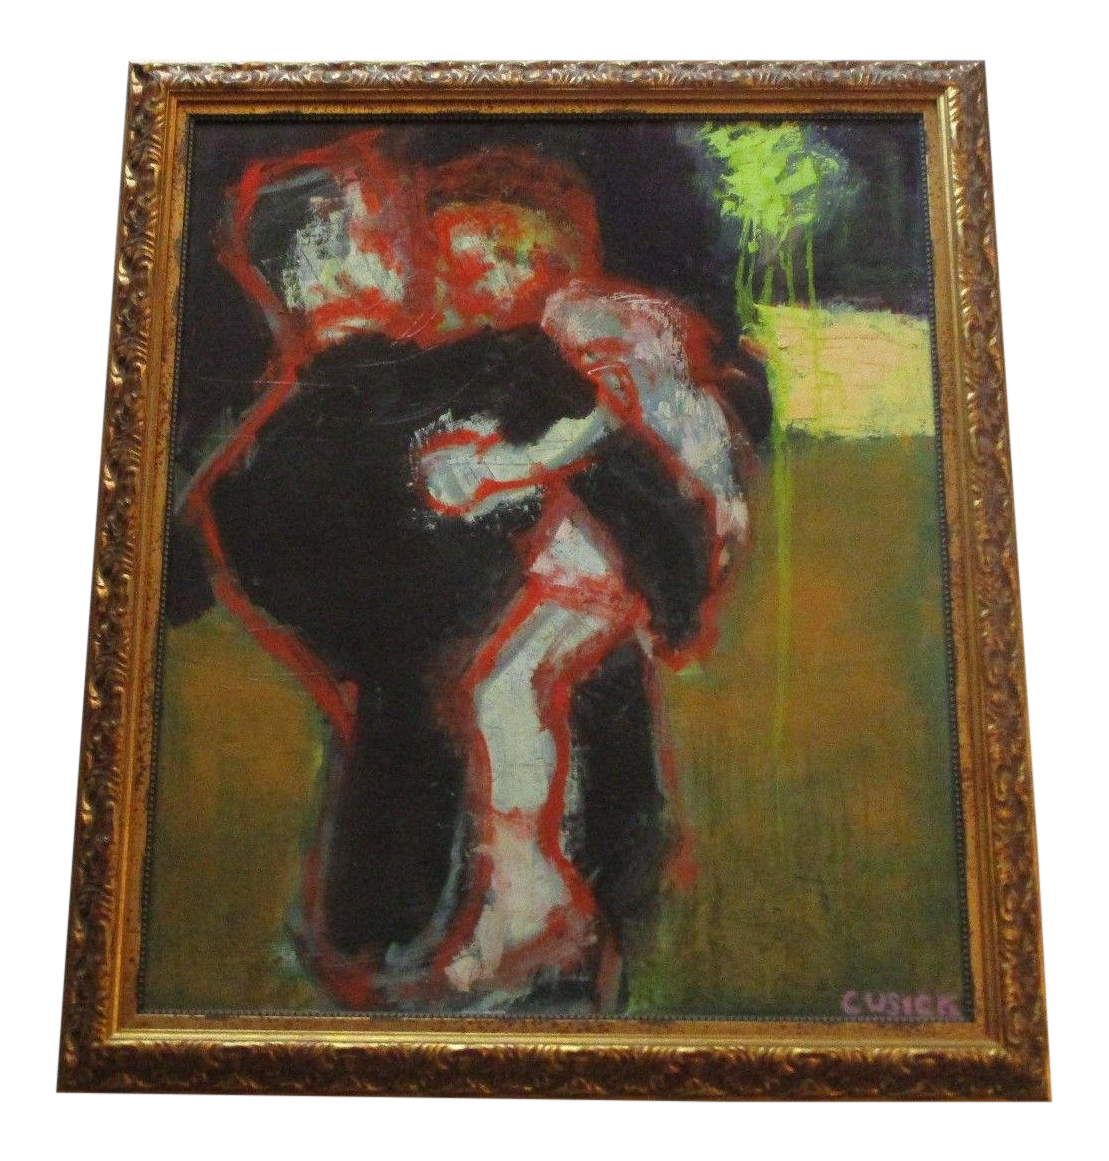 Expressionism drawing figure. Cusick signed painting abstract